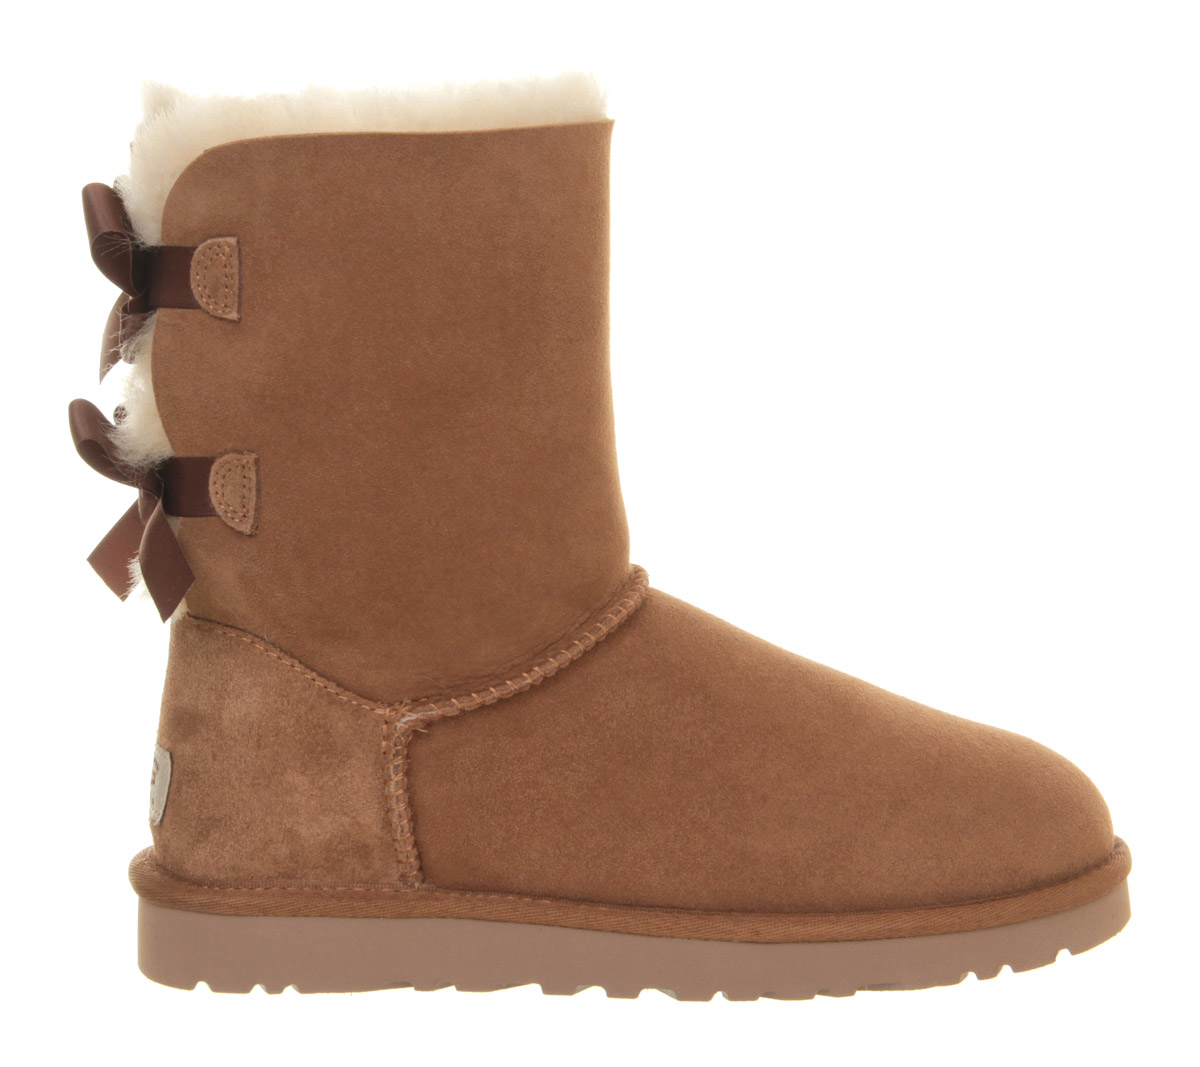 ugg bailey bow calf boots in brown chestnut lyst